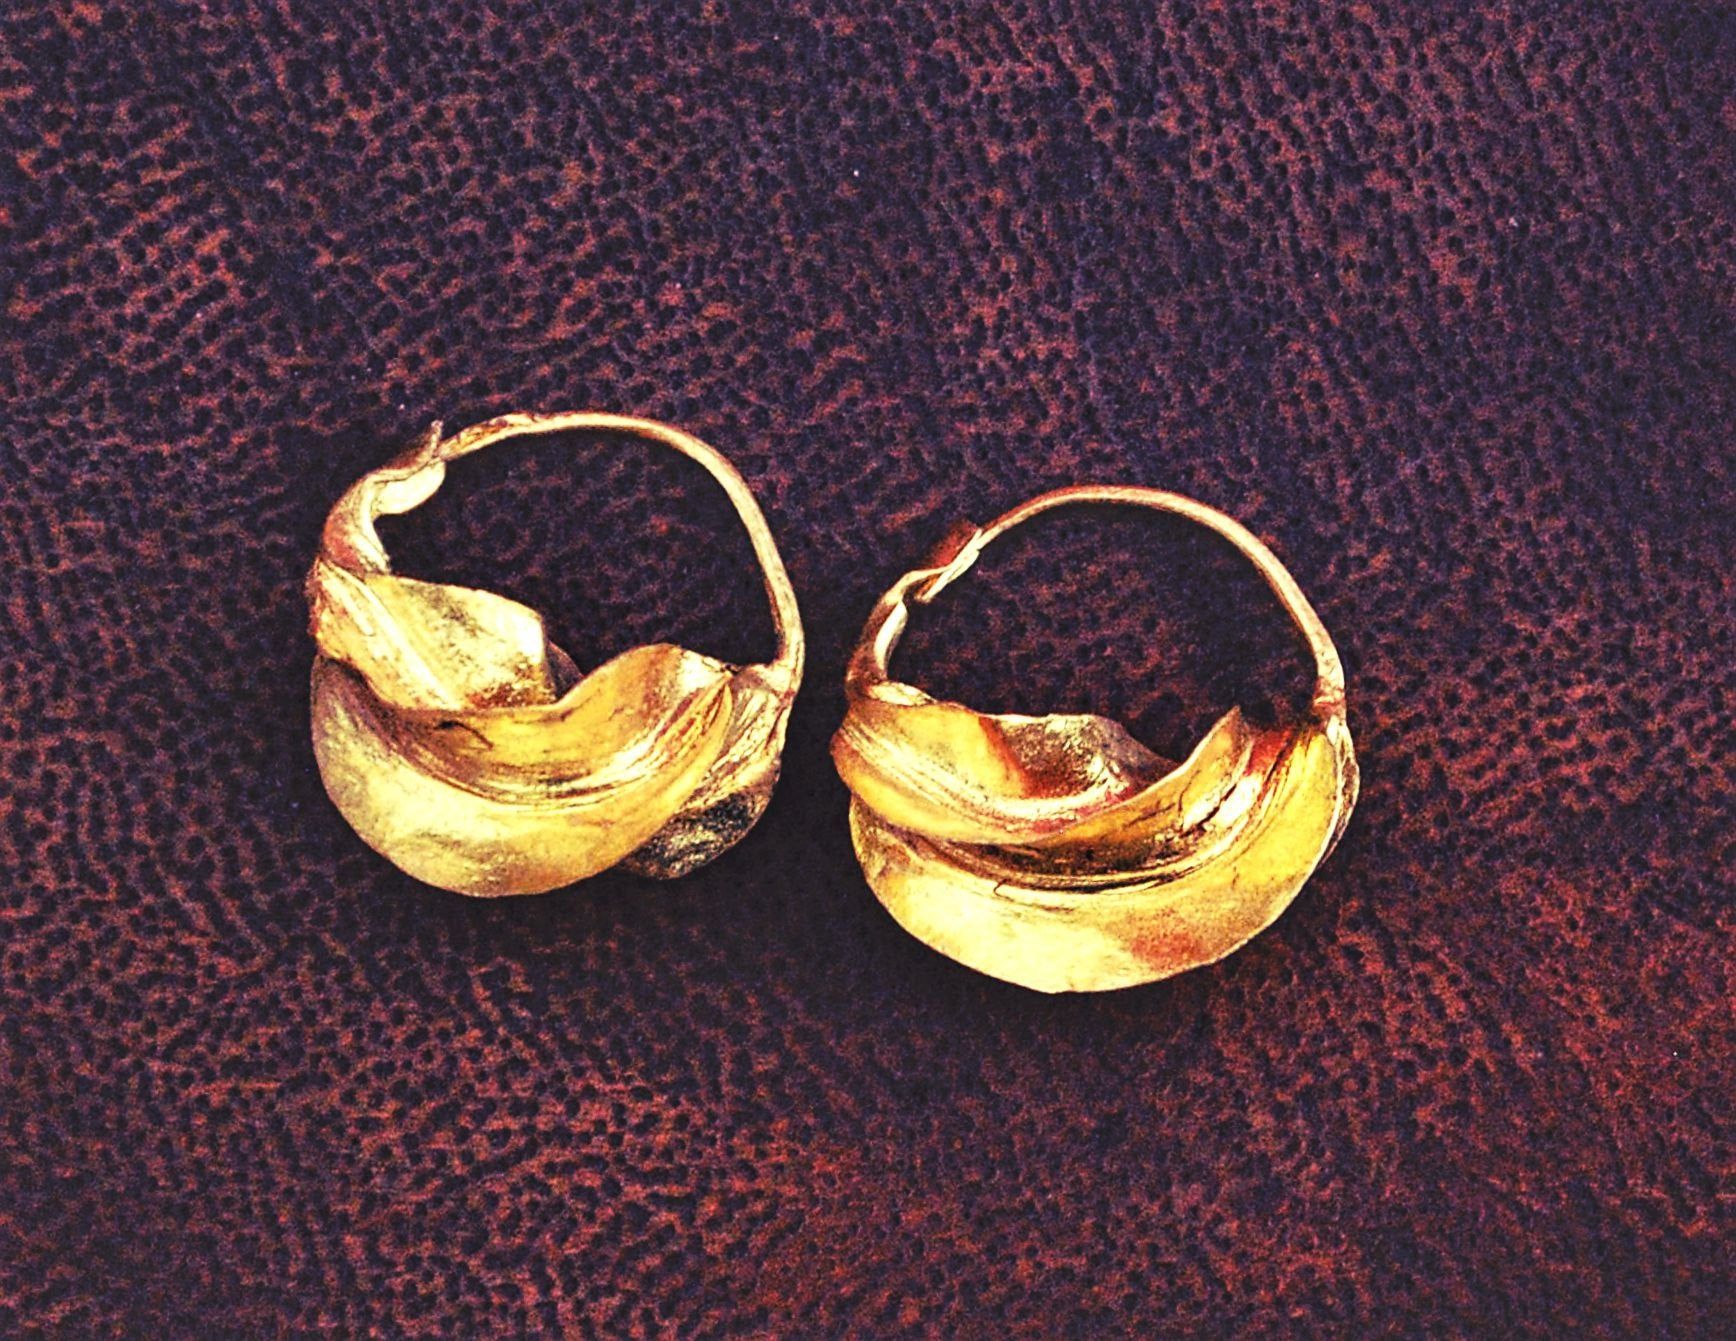 Tribal Fulani Hoop Earrings XS - Gold Plate Copper Hoop Earrings- Ethnic Tribal Hoop Earrings - Fulani Jewelry - Fulani Hoop Earrings